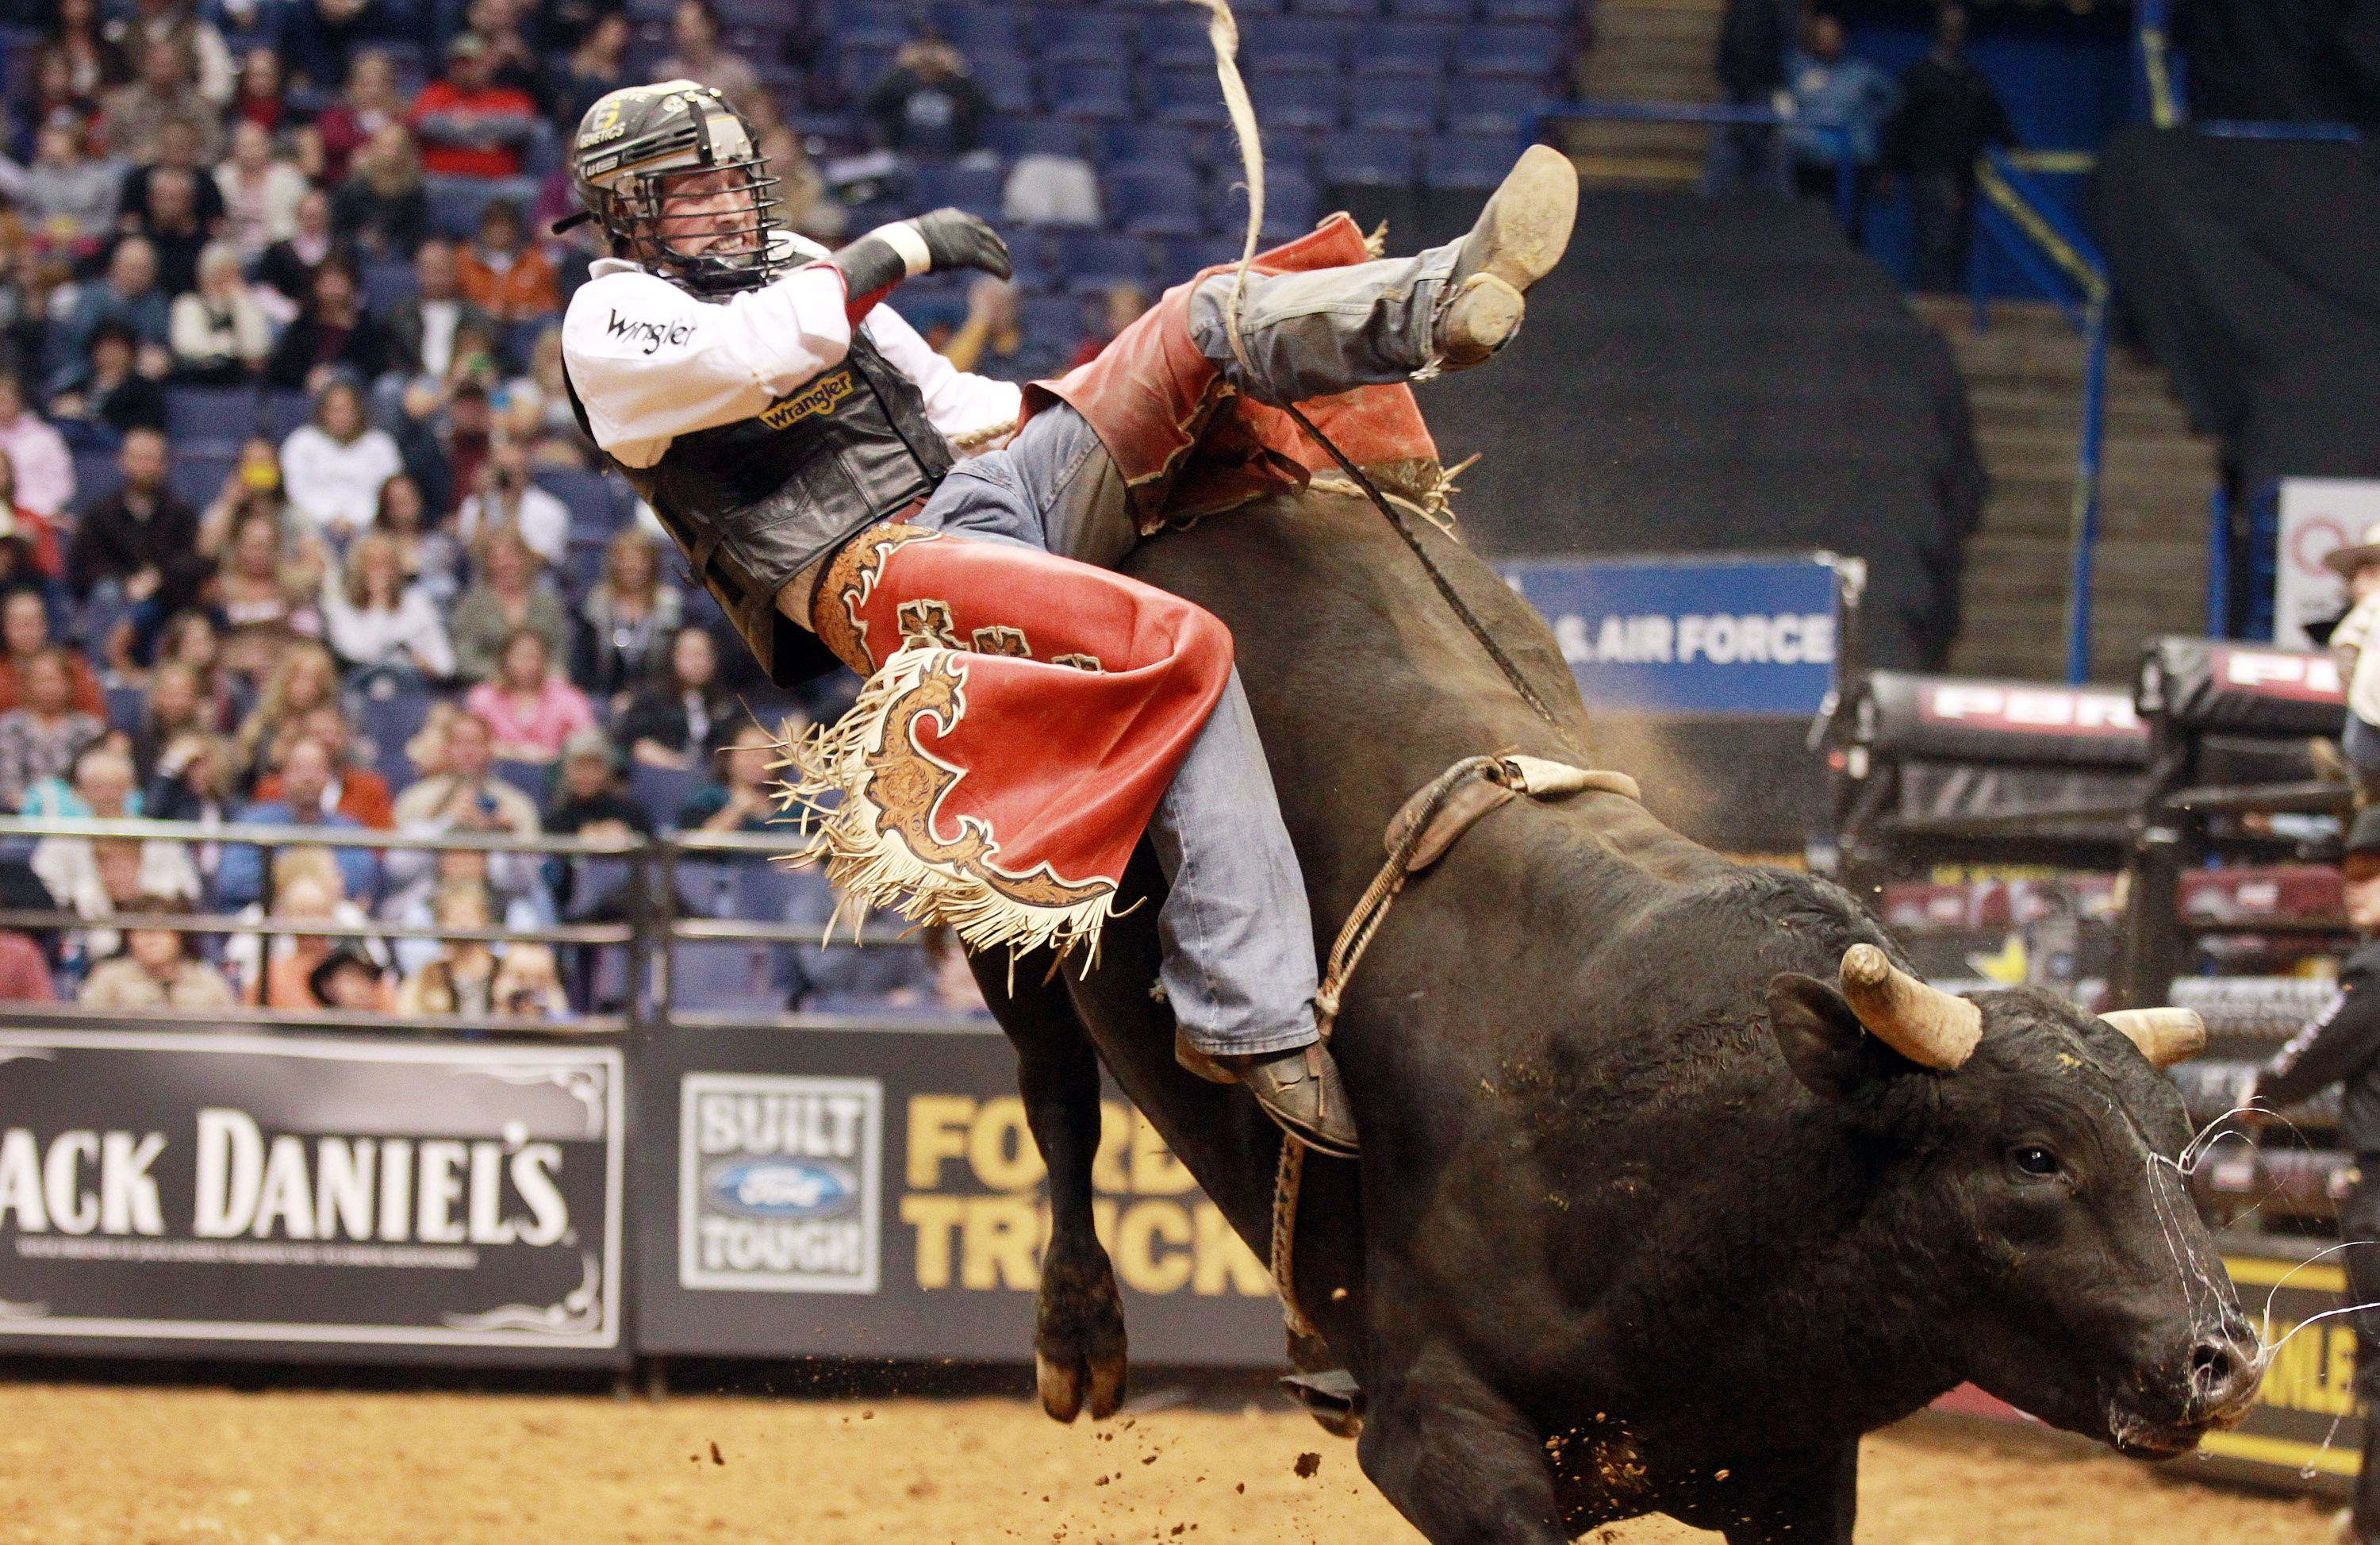 Res: 3000x1947, Bull riding bullrider rodeo western cowboy extreme cow (30) wallpaper |   | 298706 | WallpaperUP